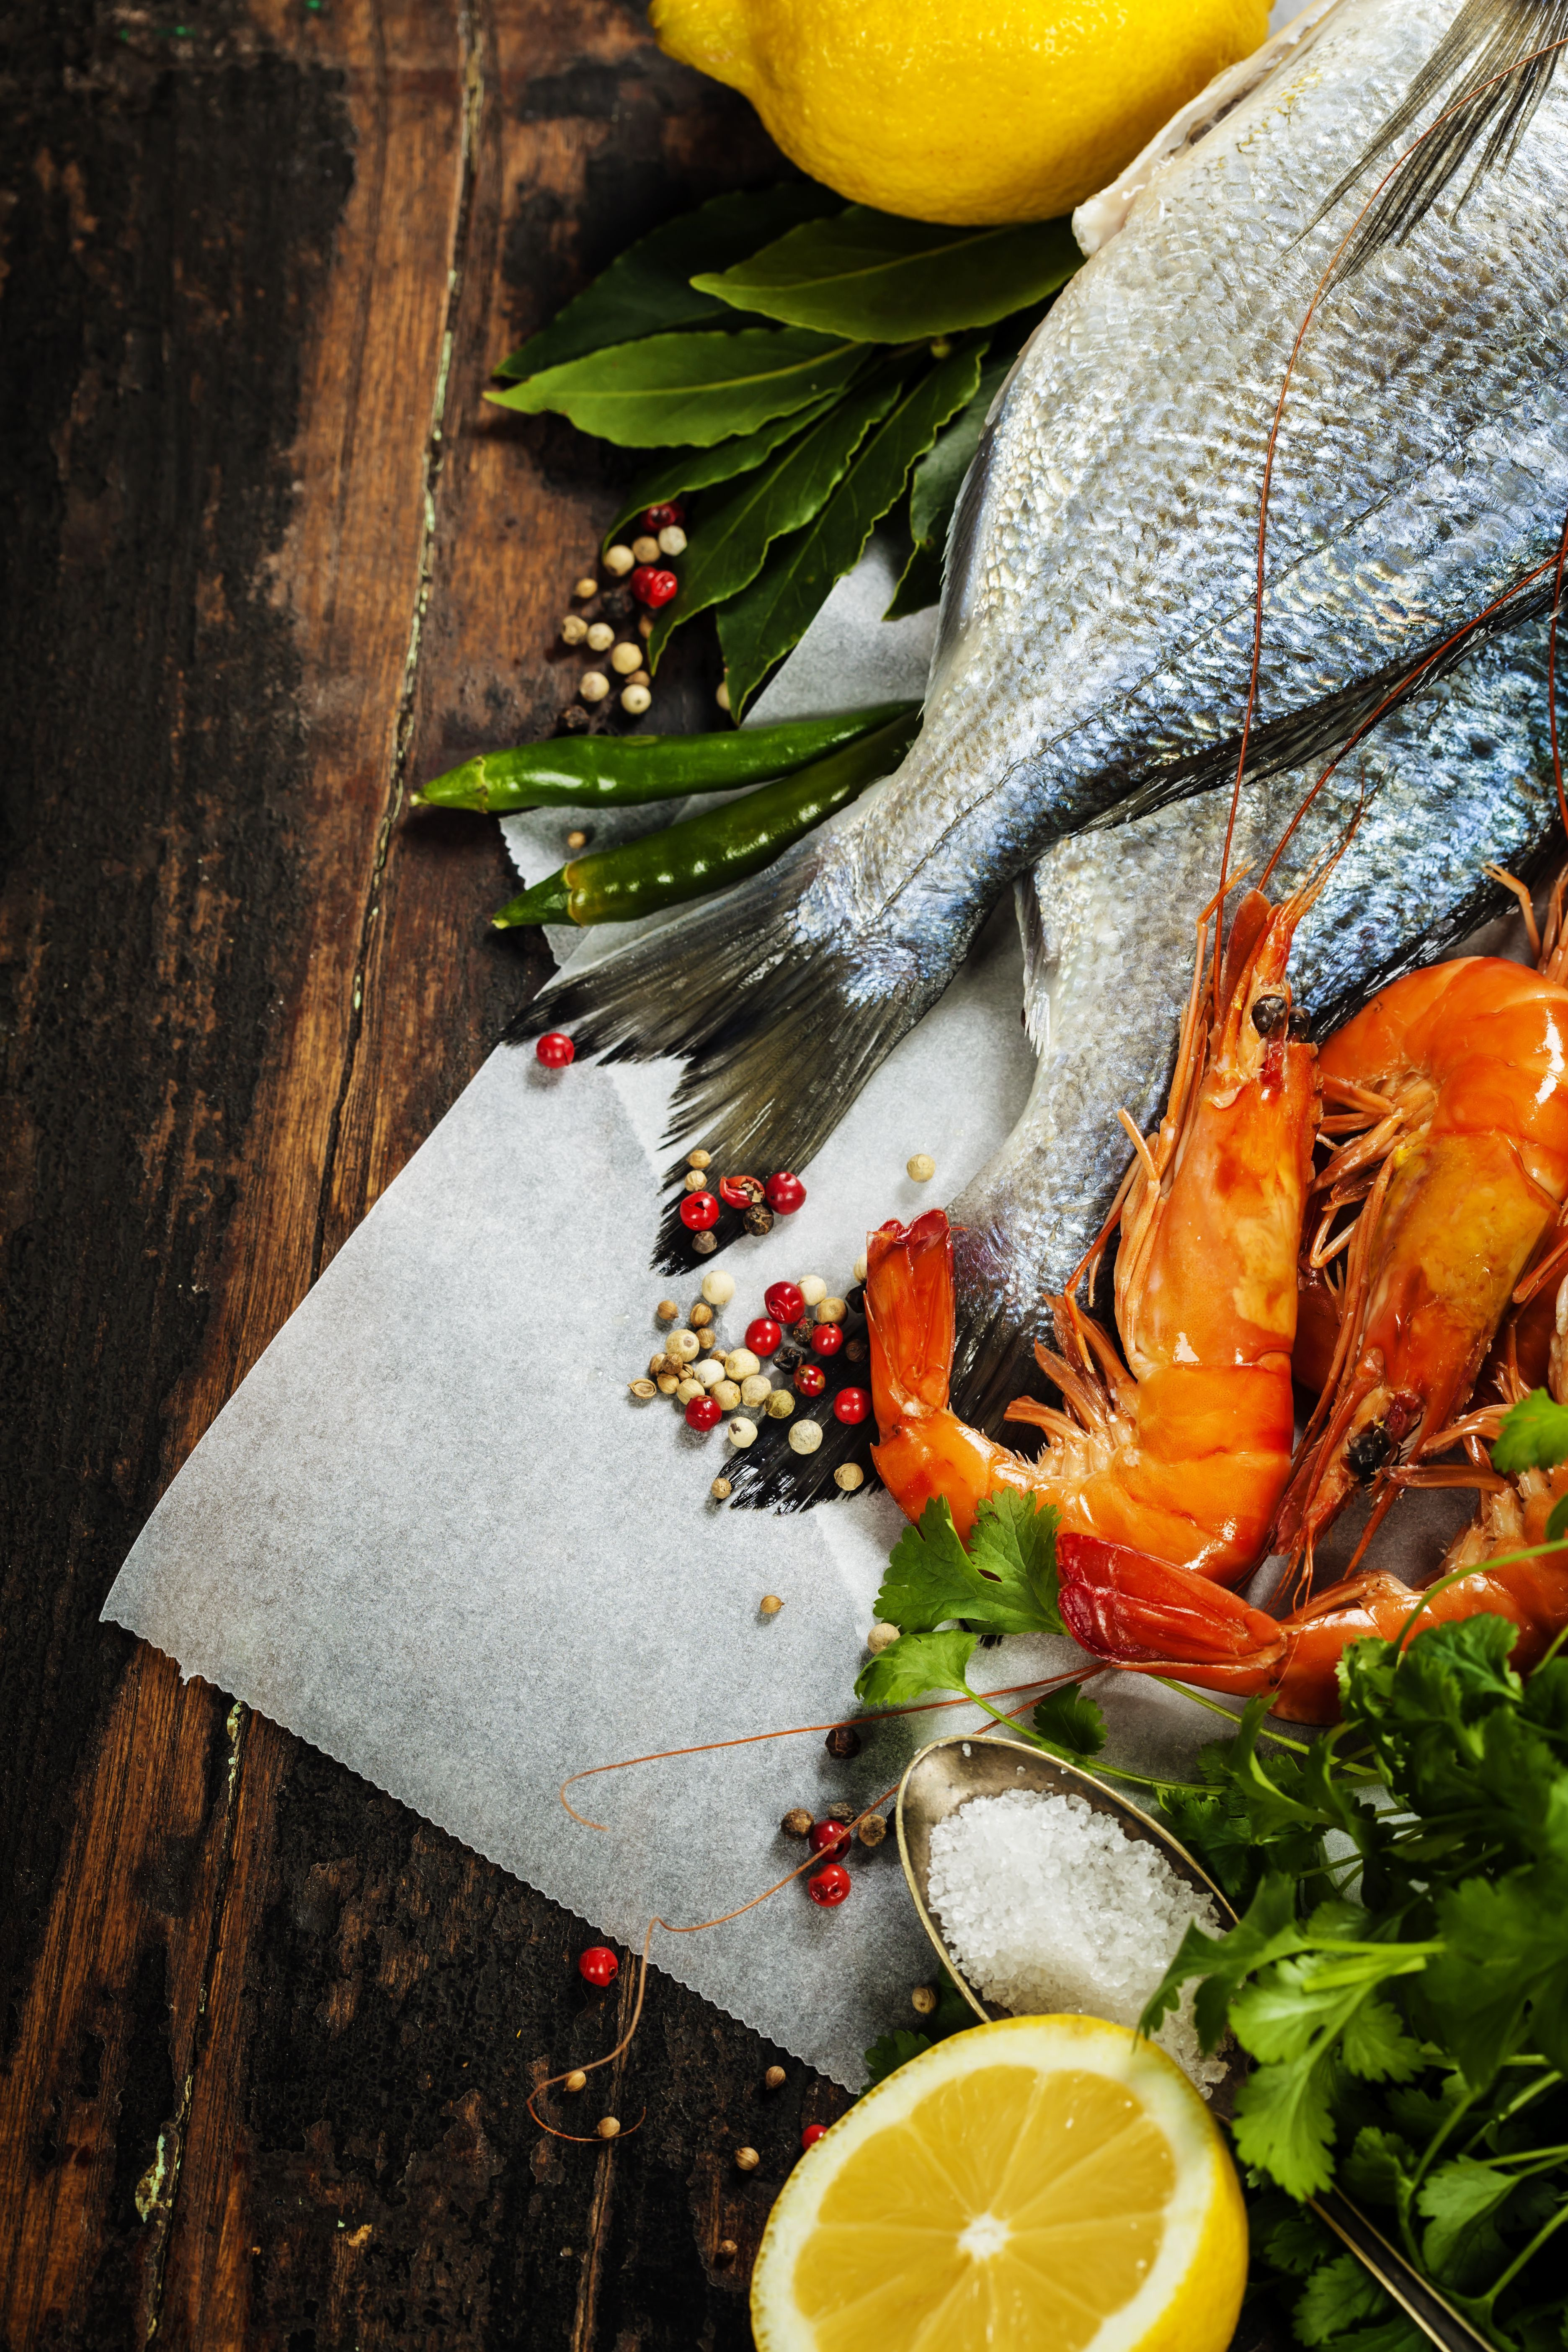 fresh dorado fish and shrimps on wooden board with ingredients- food and drink